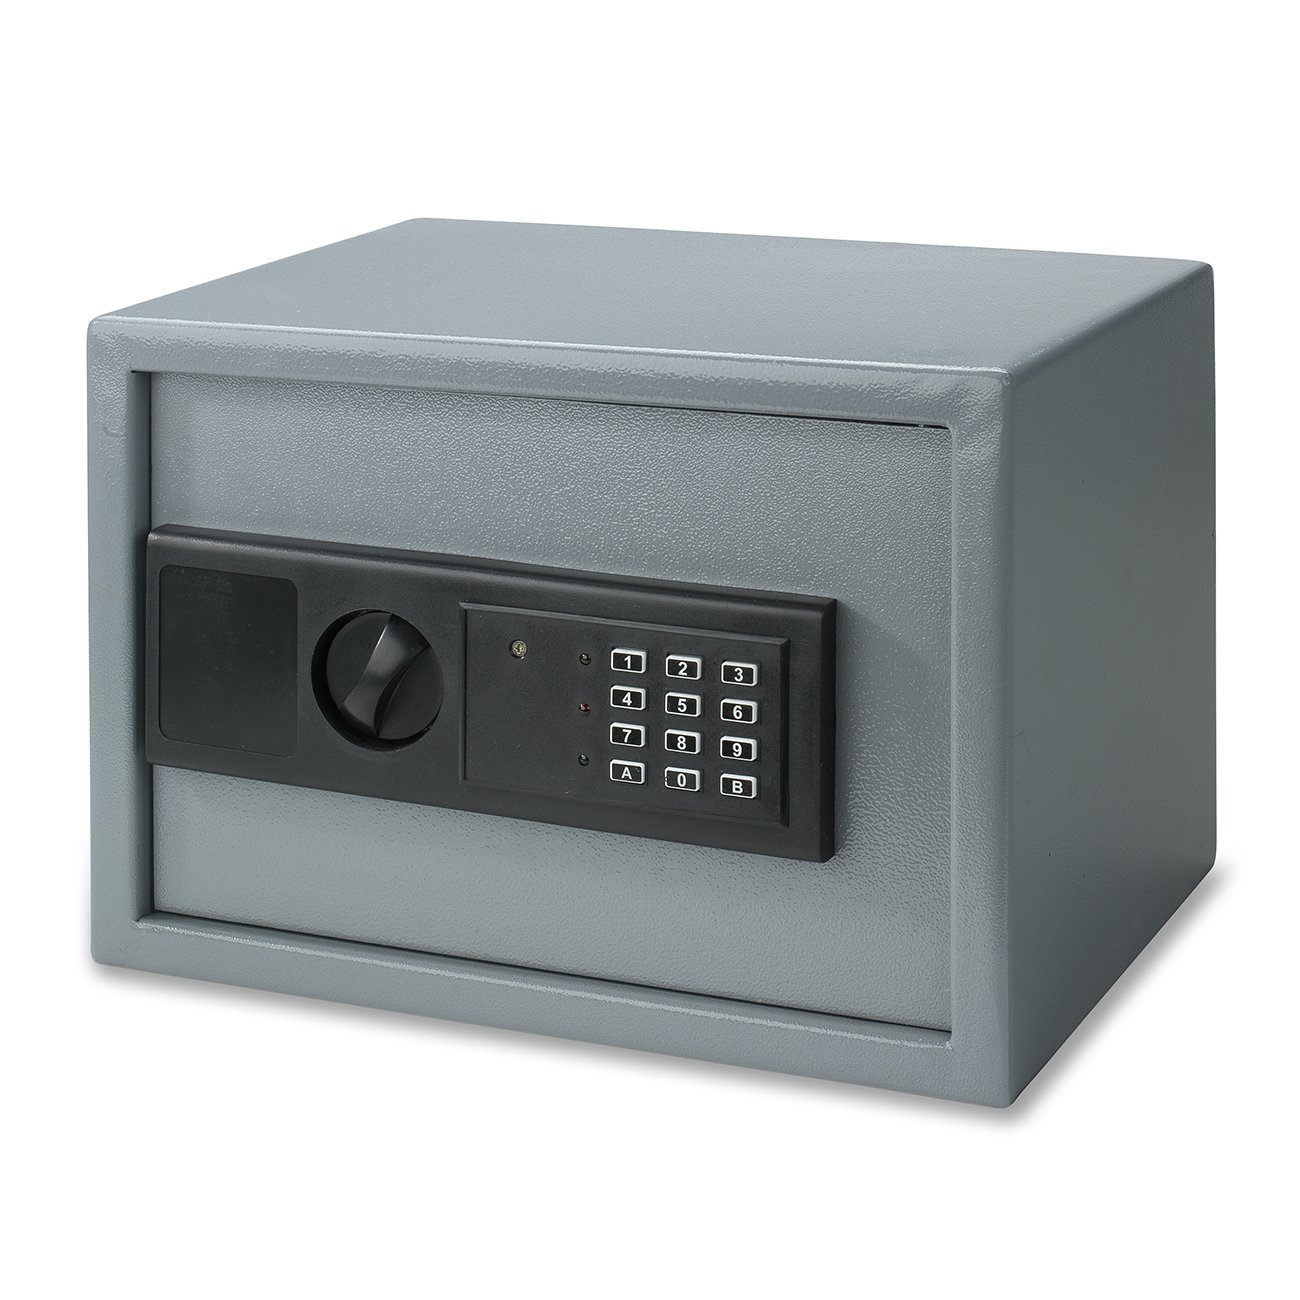 Neiko 61011 Digital Electronic Security Safe, Steel | Keyless Entry | 1 Cubic Foot | Gray